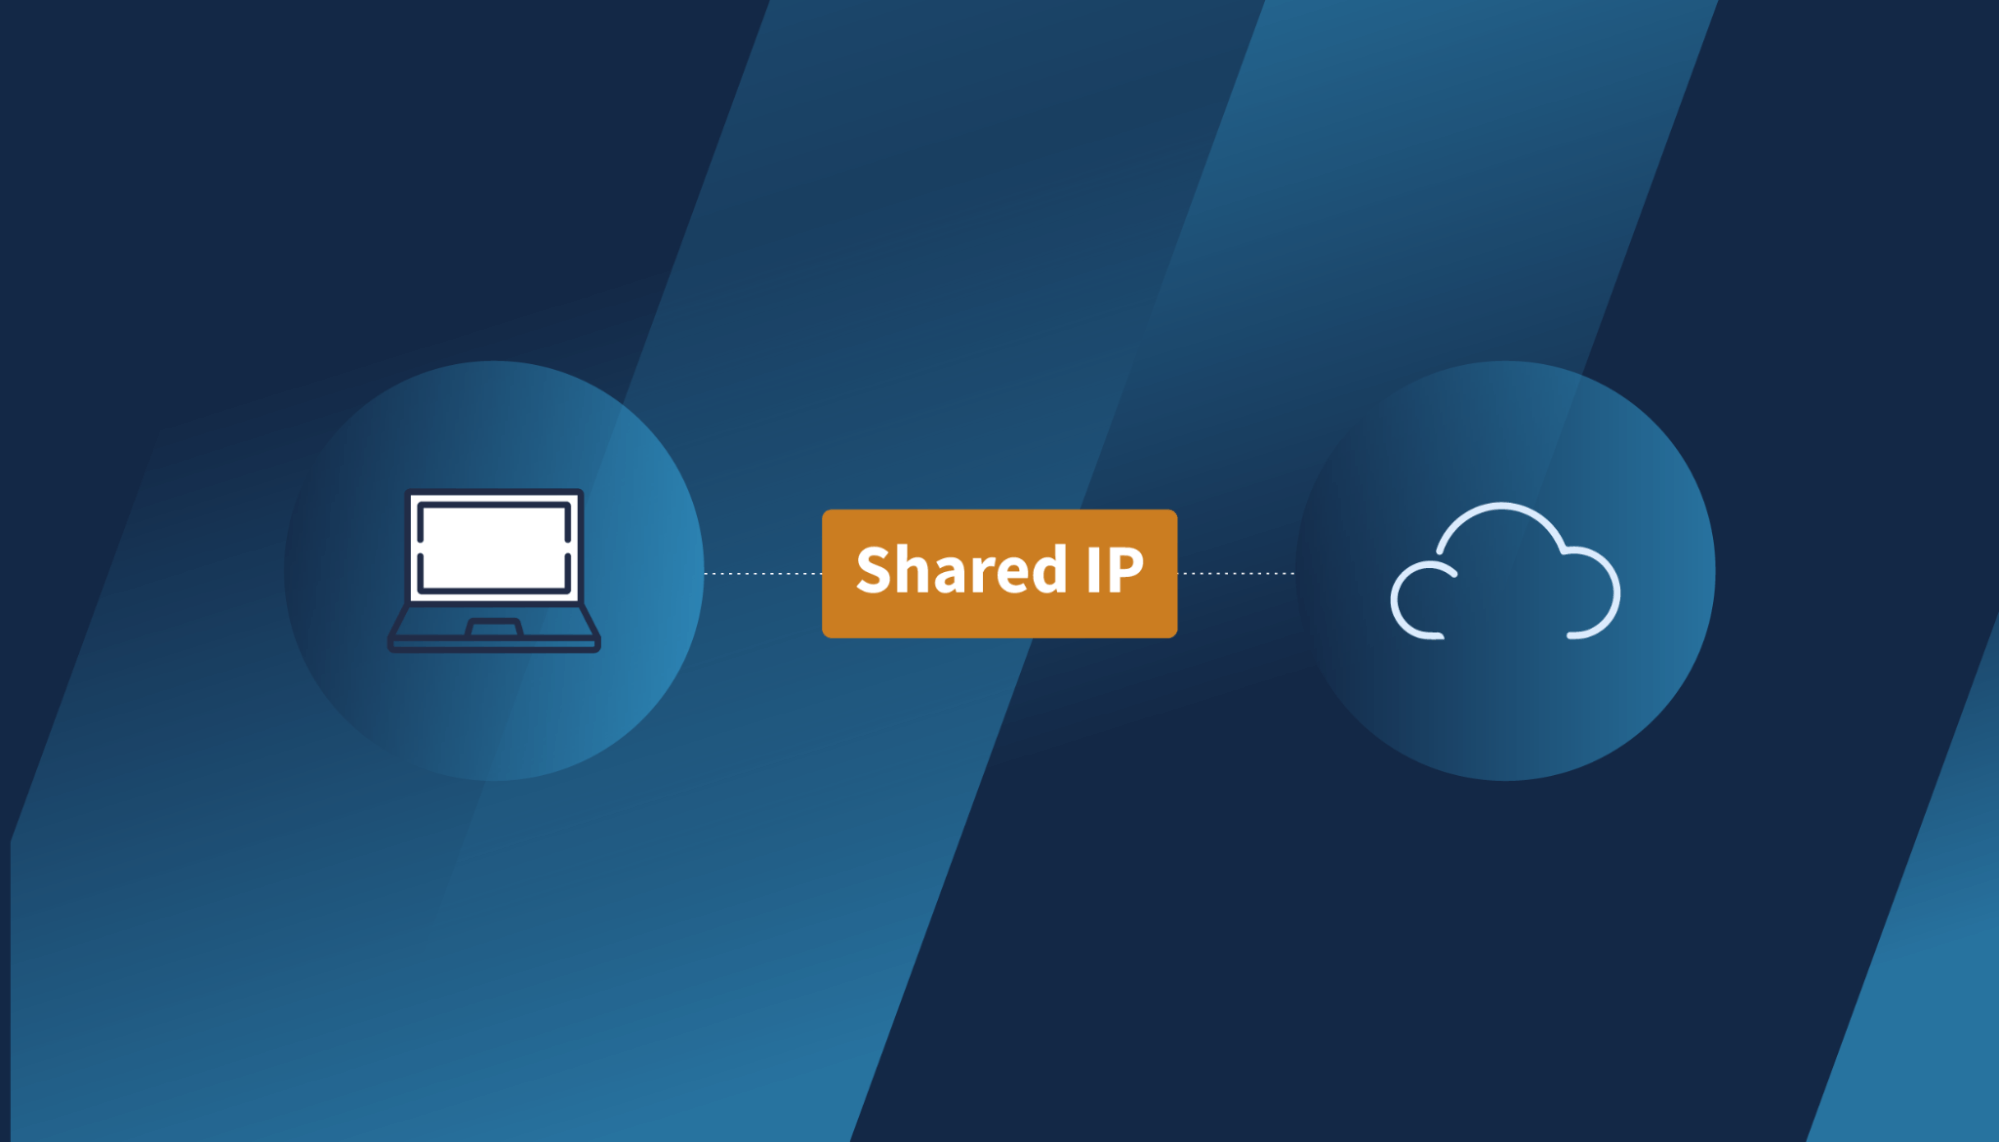 any person you download a torrent from (or share one with) can potentially see your IP address